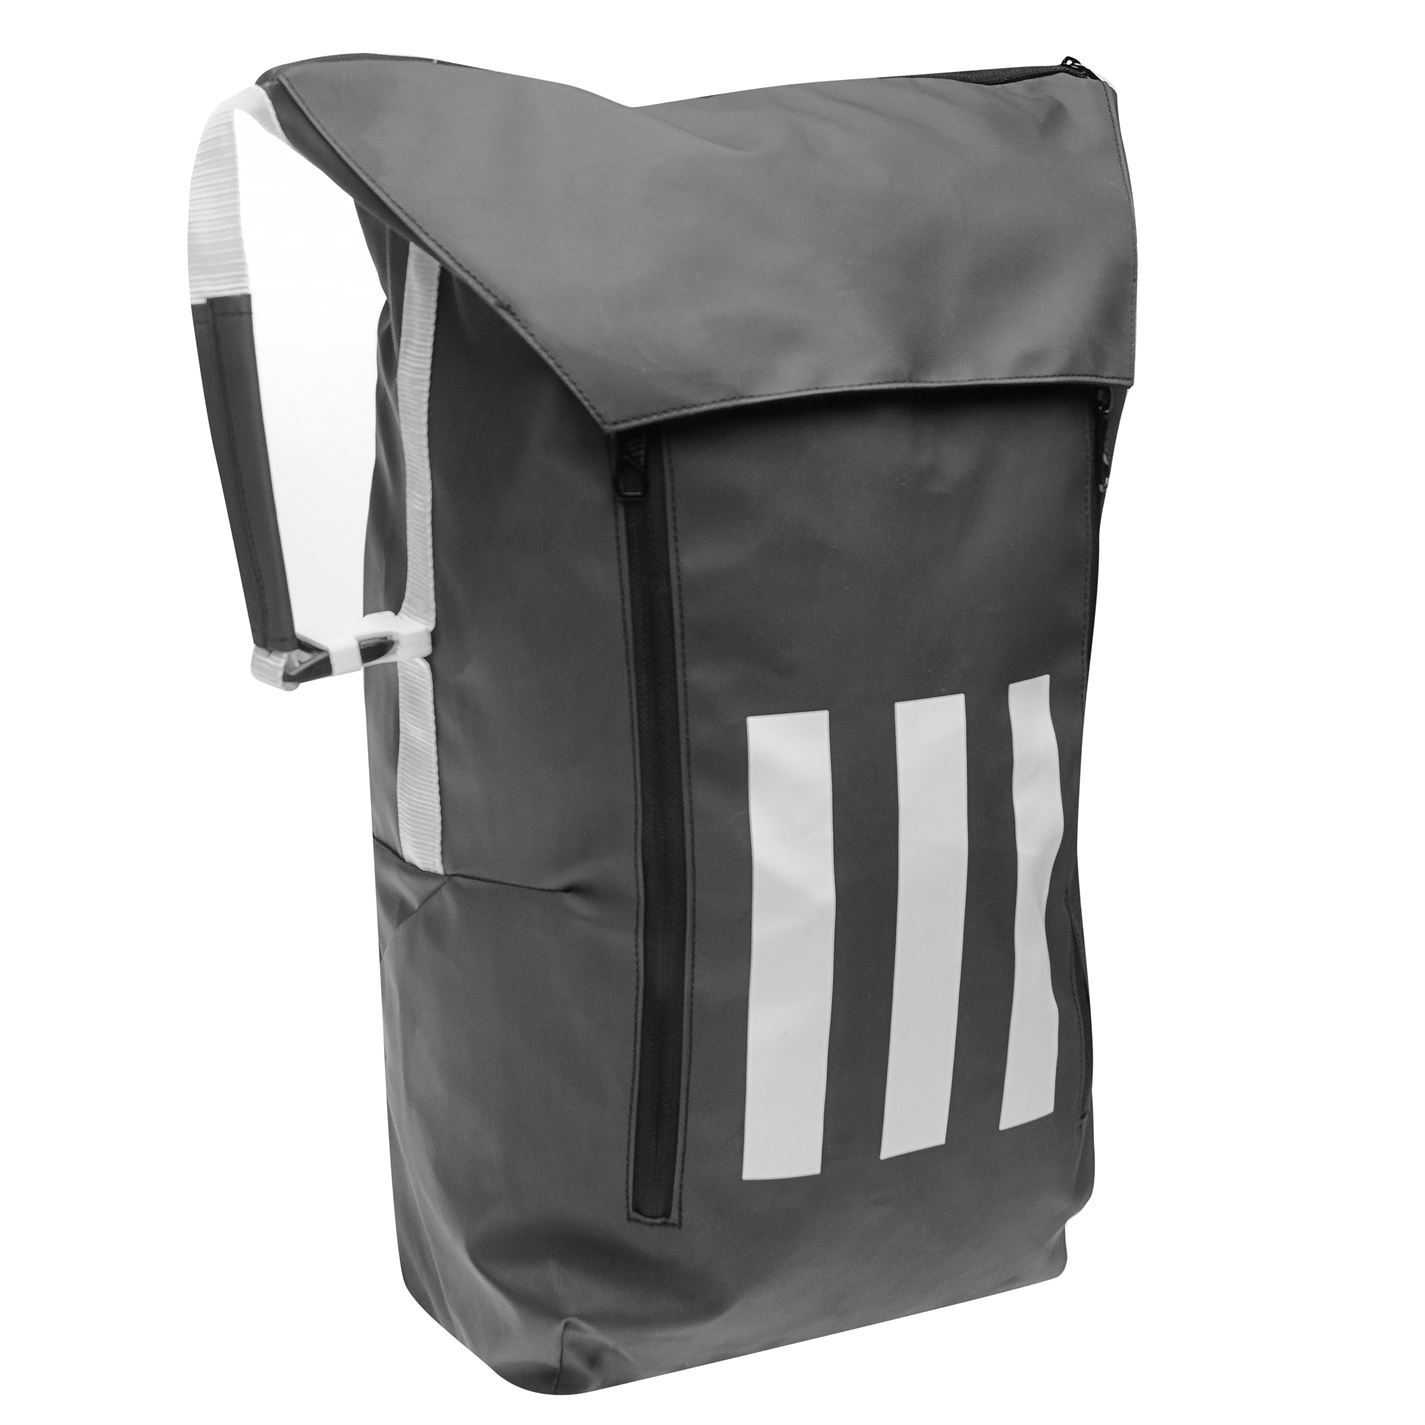 5ea1167f6 ... adidas Athletic ID Backpack Black/White Sports Gym Bag Rucksack  Carryall ...